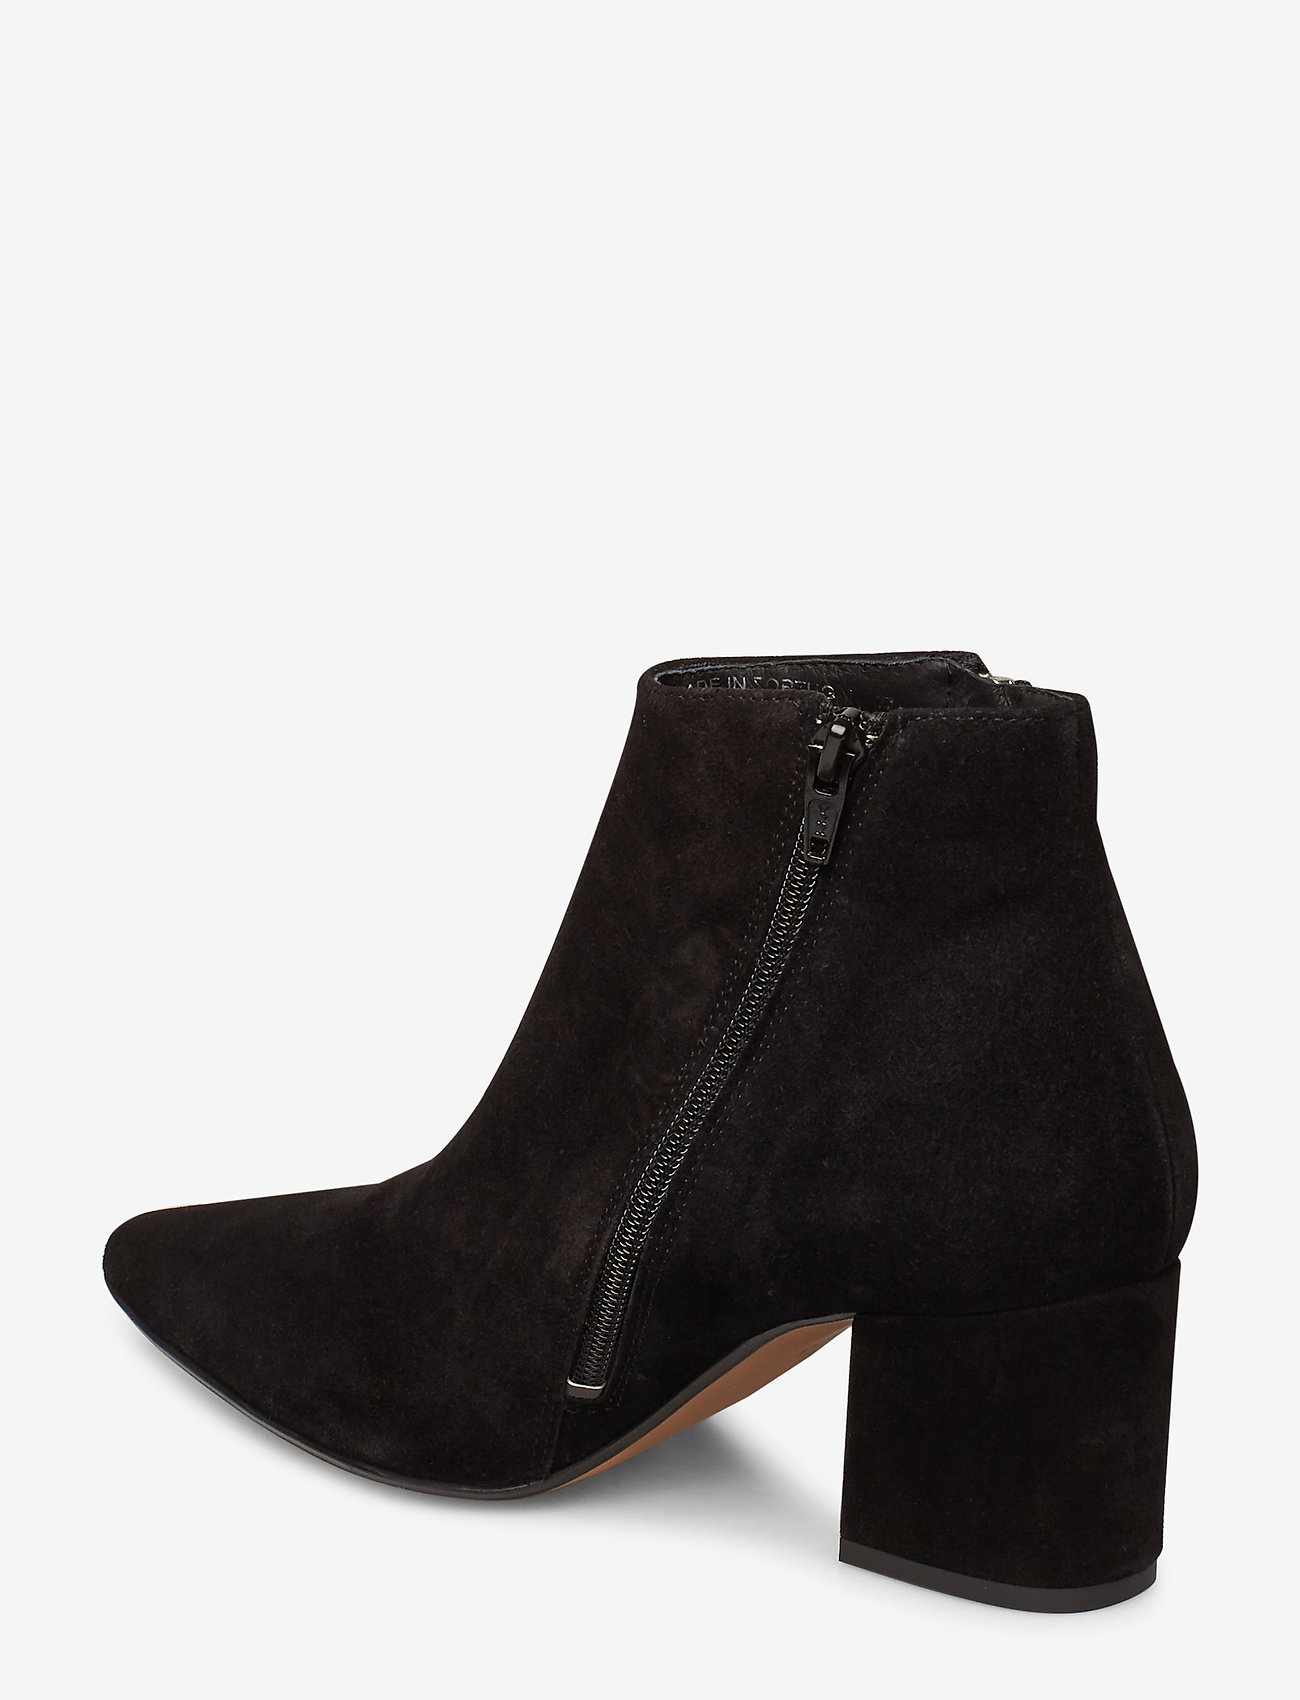 Biacalais Suede Ankle Boot (Black 1) (479.98 kr) - Bianco